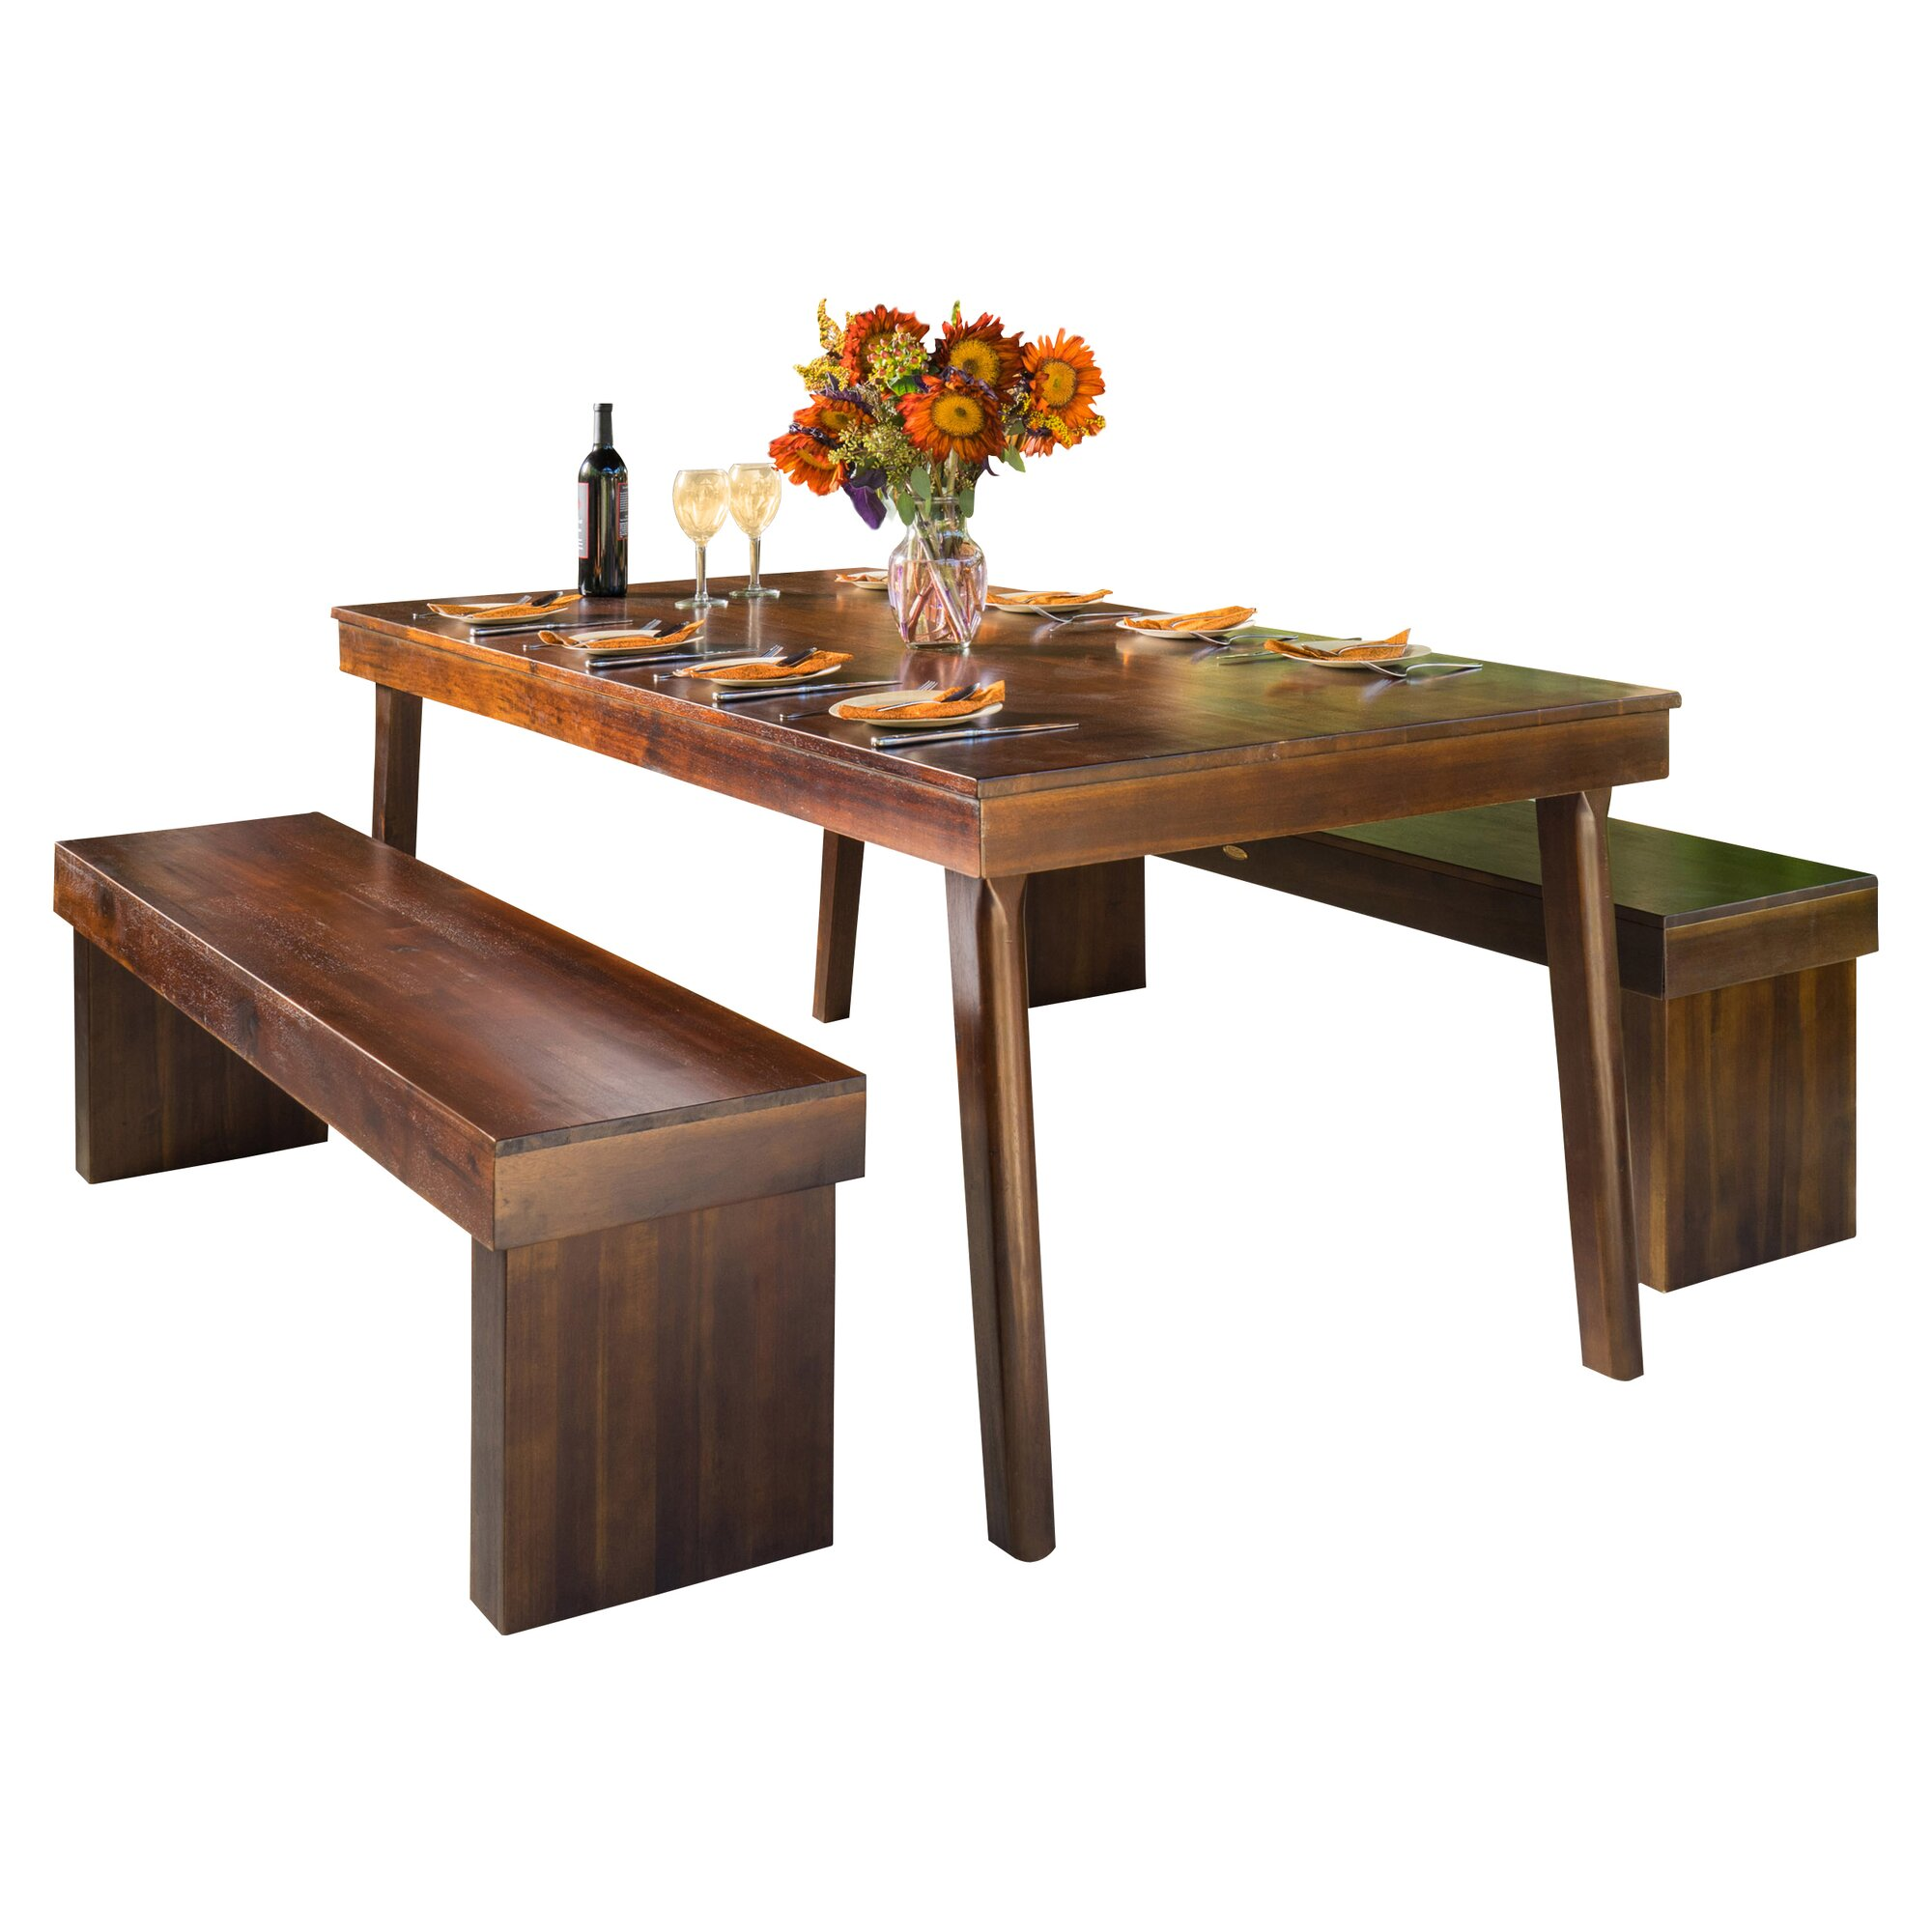 3 Piece Dining Room Set: Home Loft Concepts Kennedy 3 Piece Dining Set & Reviews